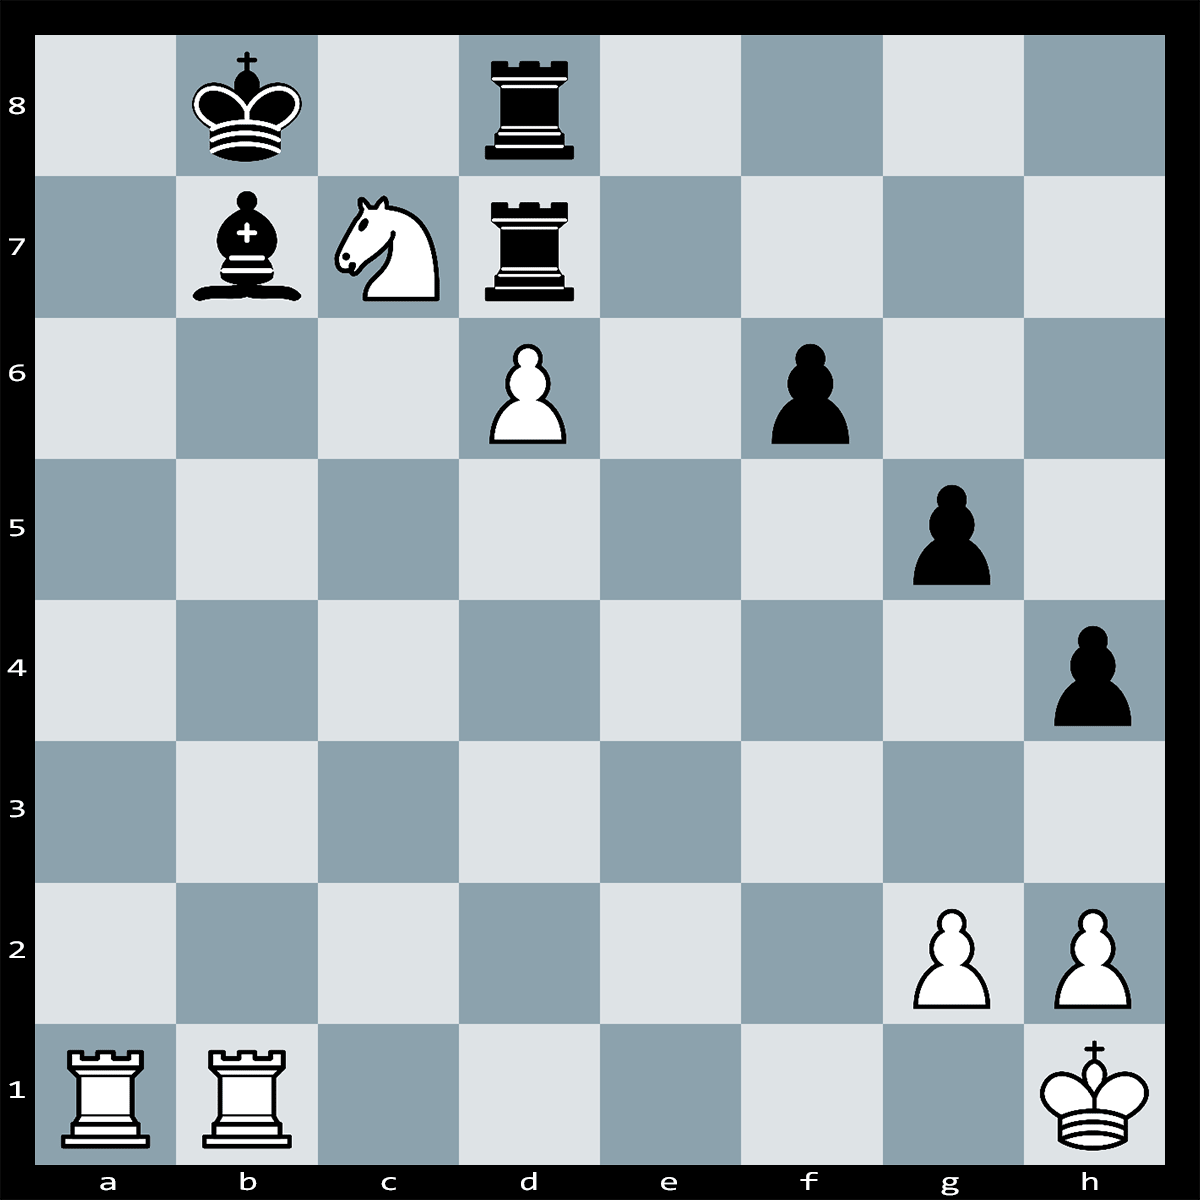 Chess Puzzle #224 | beginner chess puzzle, Find the Winning move. White to Play.